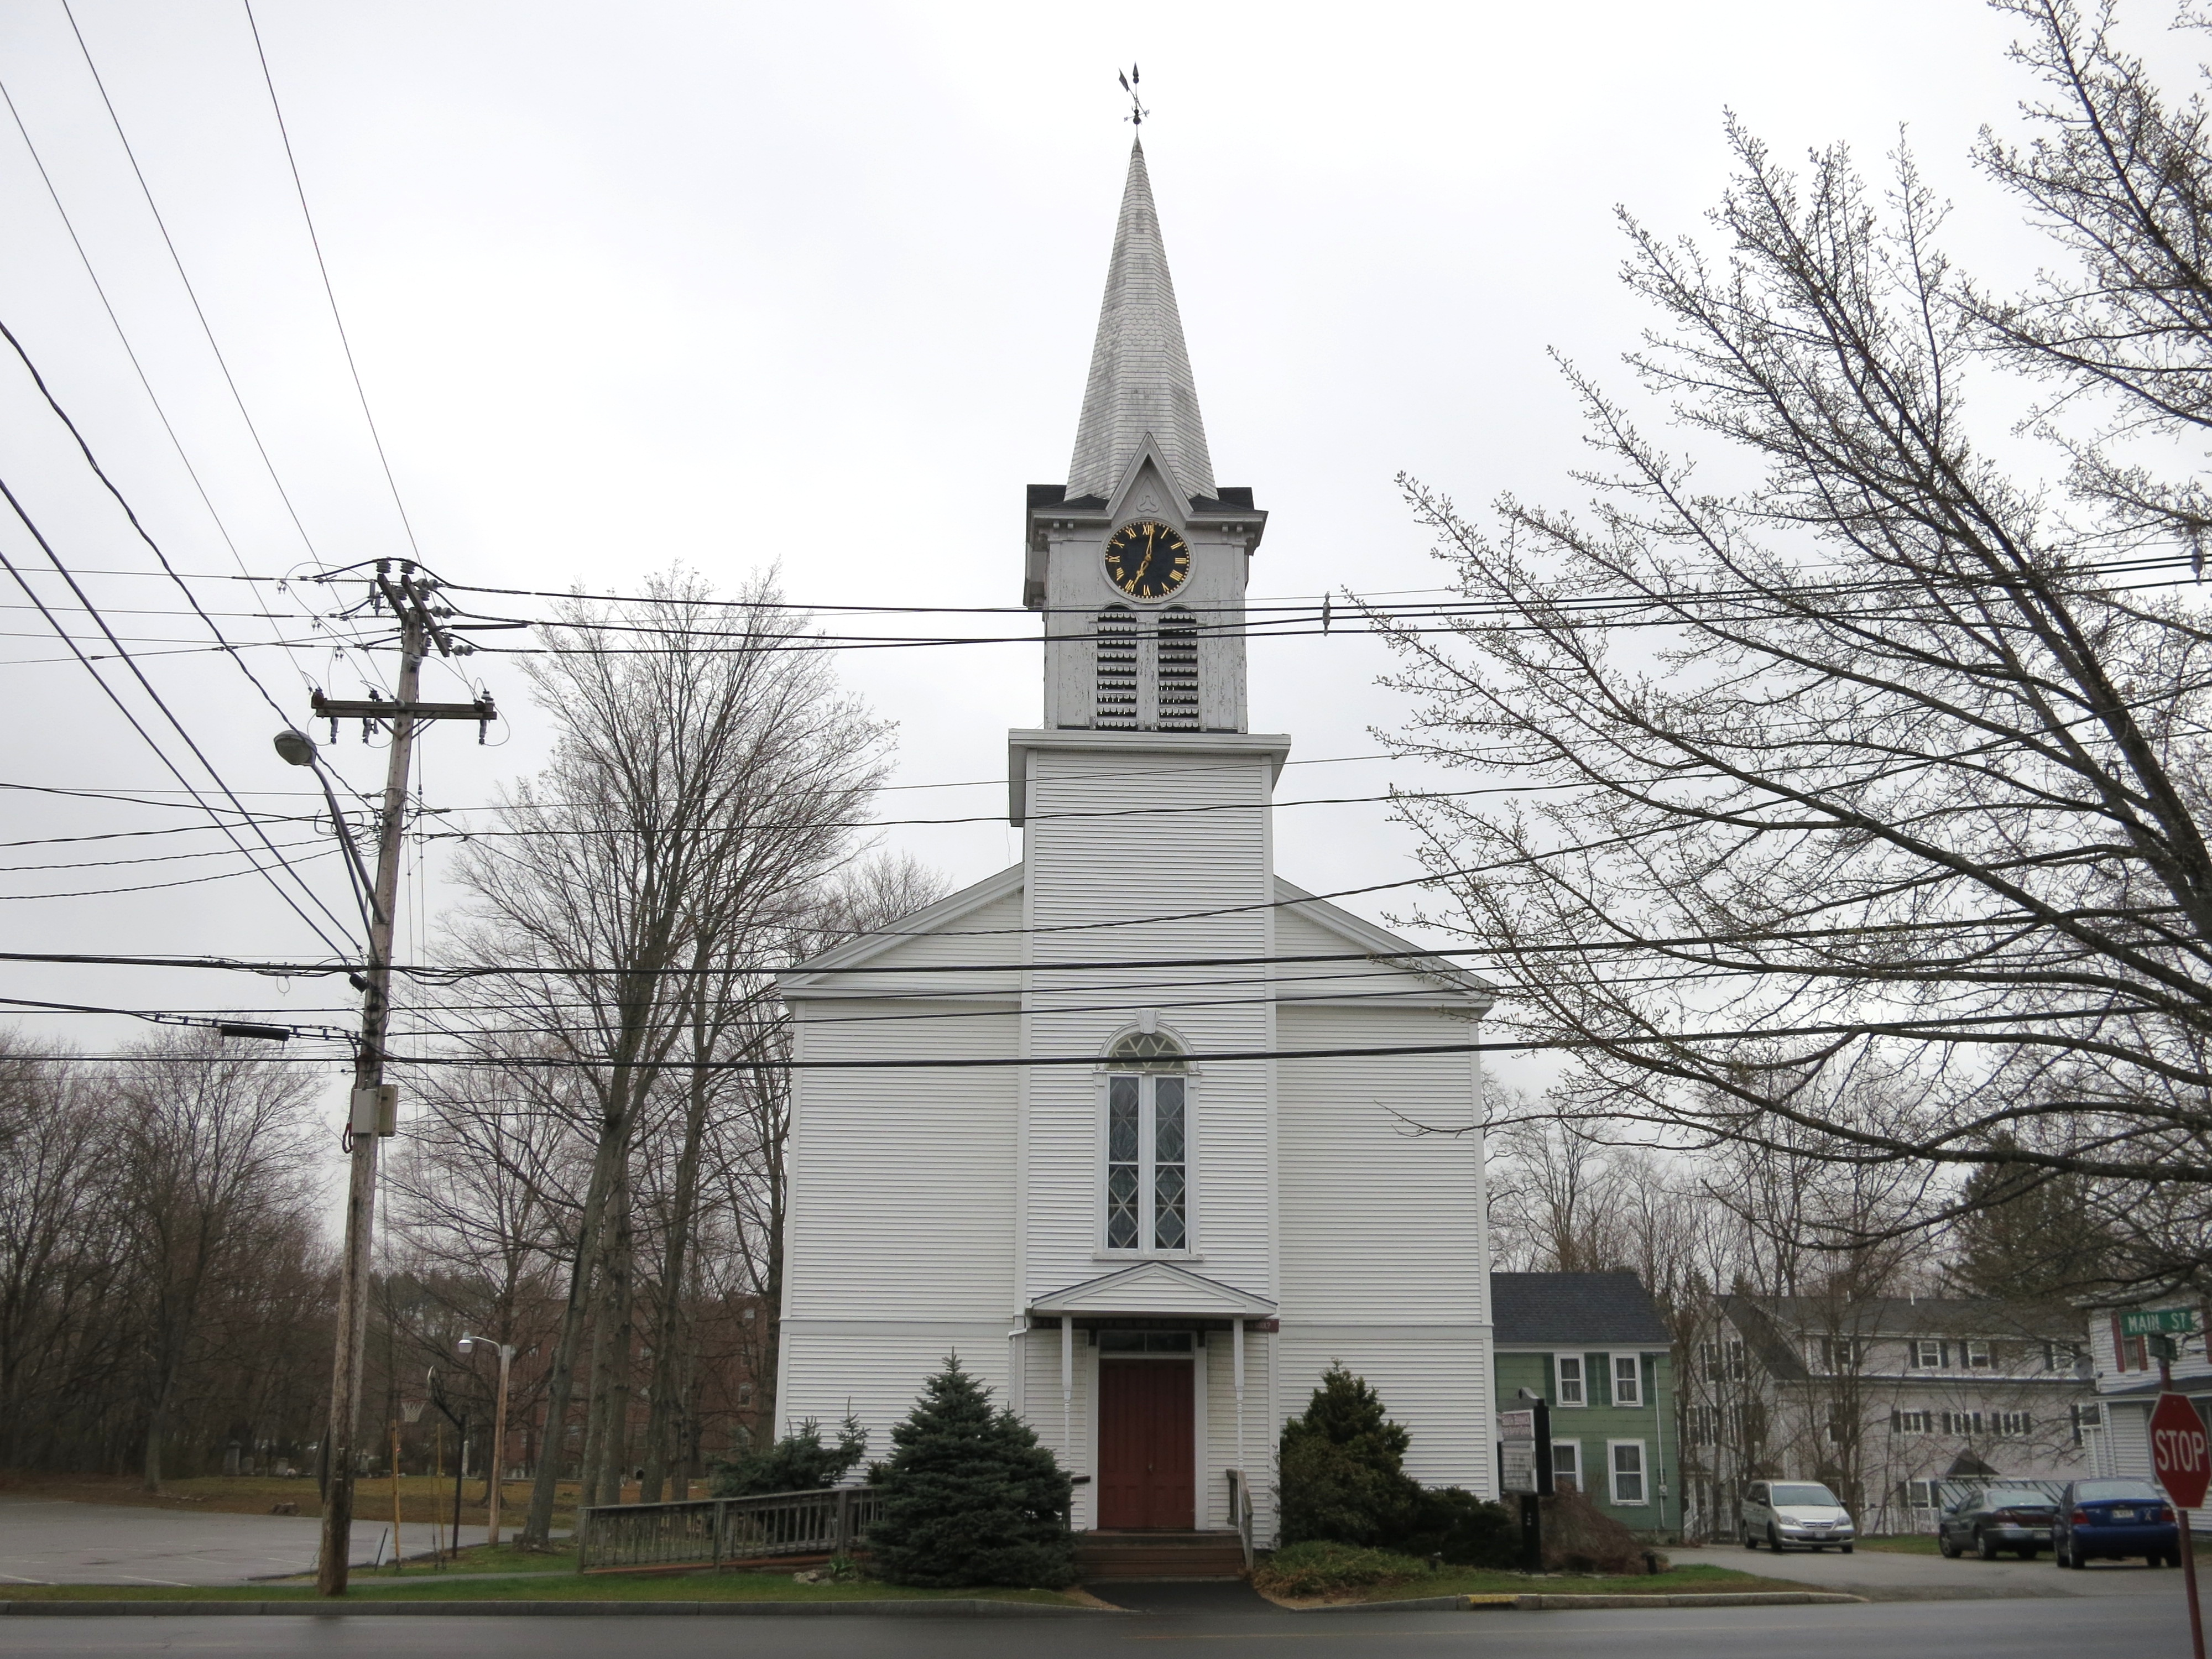 Church of minister William E. Hayden